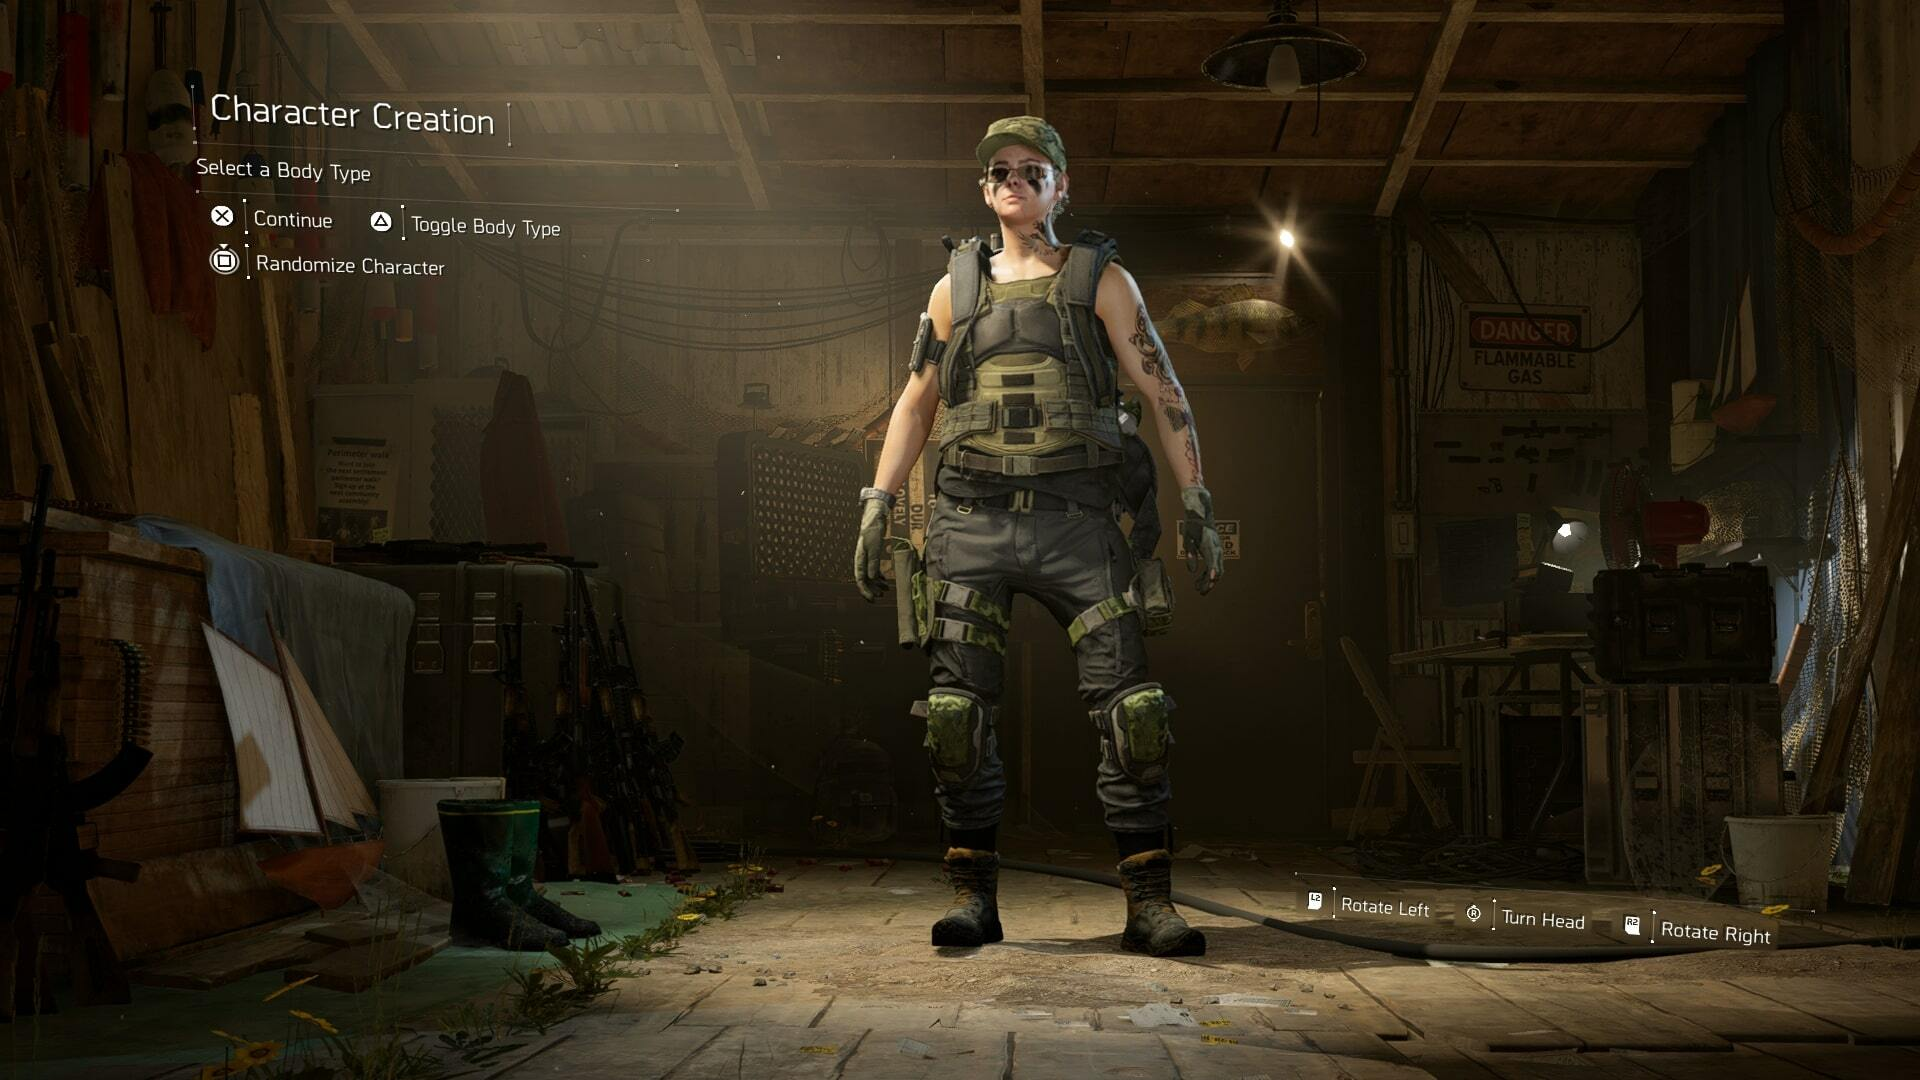 The Division 2 Character Creator - Tattoos, Customization